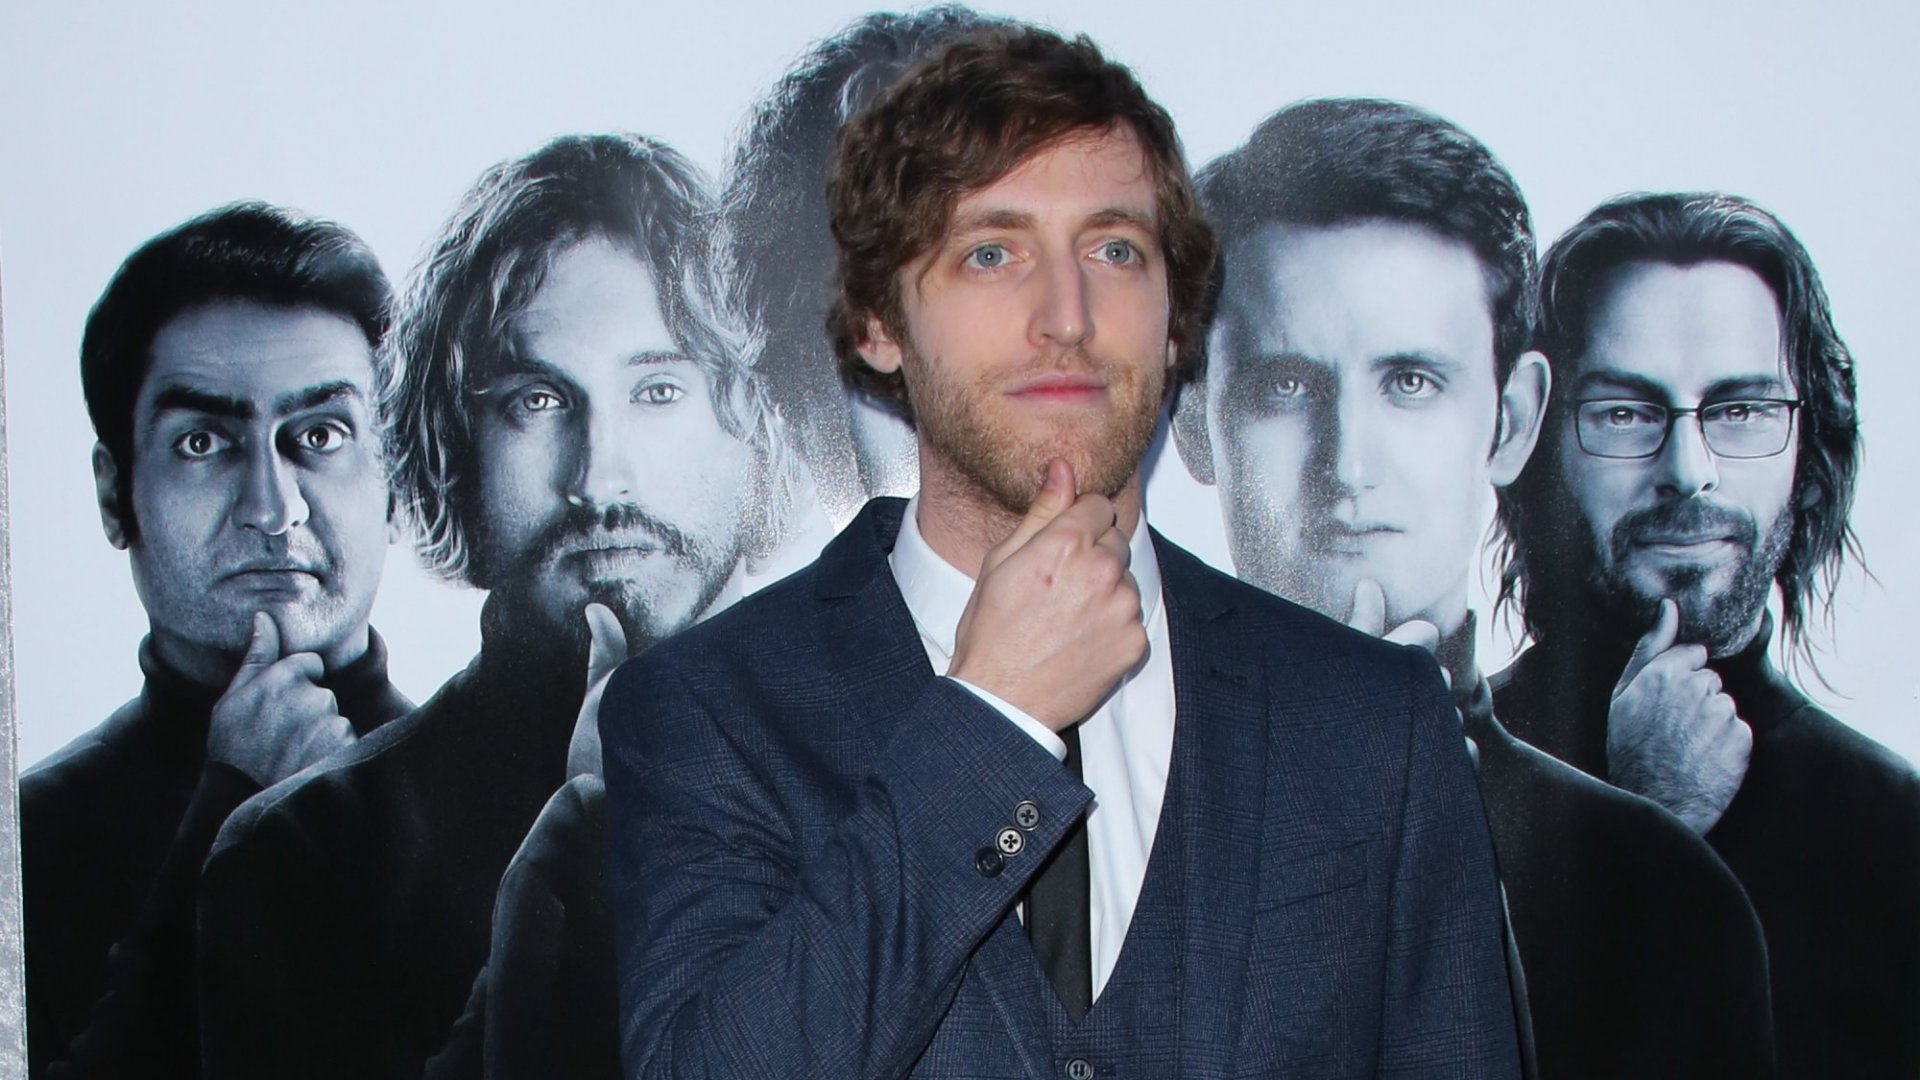 The idea of a 'New Internet' was joked about on HBO's TV series Silicon Valley, but in real life it's actually being built out.